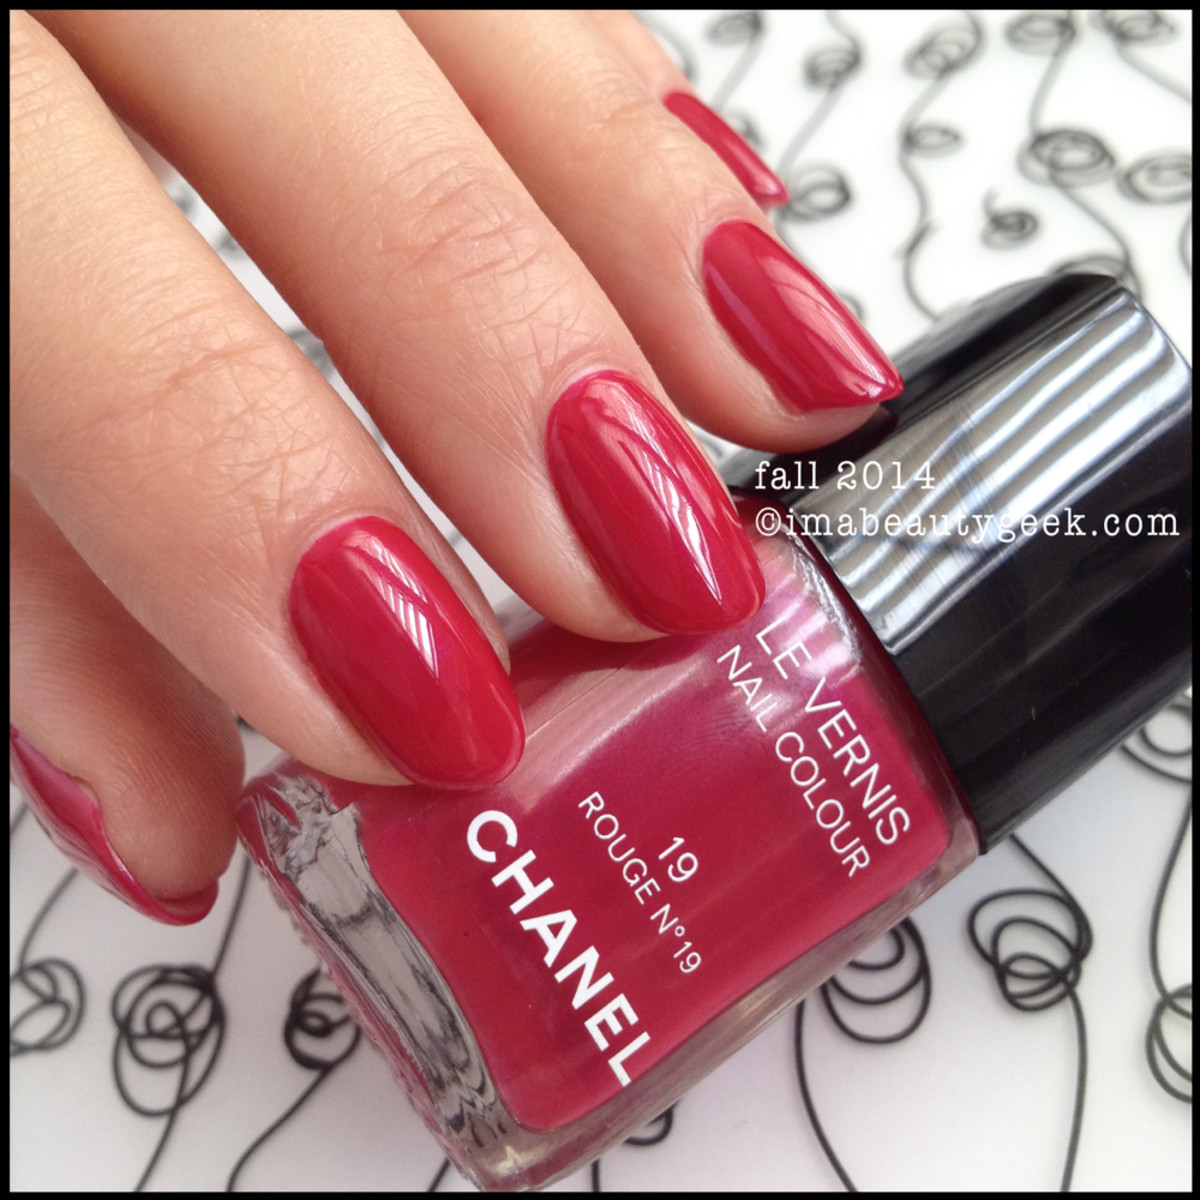 Chanel les rouges culte Rouge No19 Fall 2014 Beautygeeks